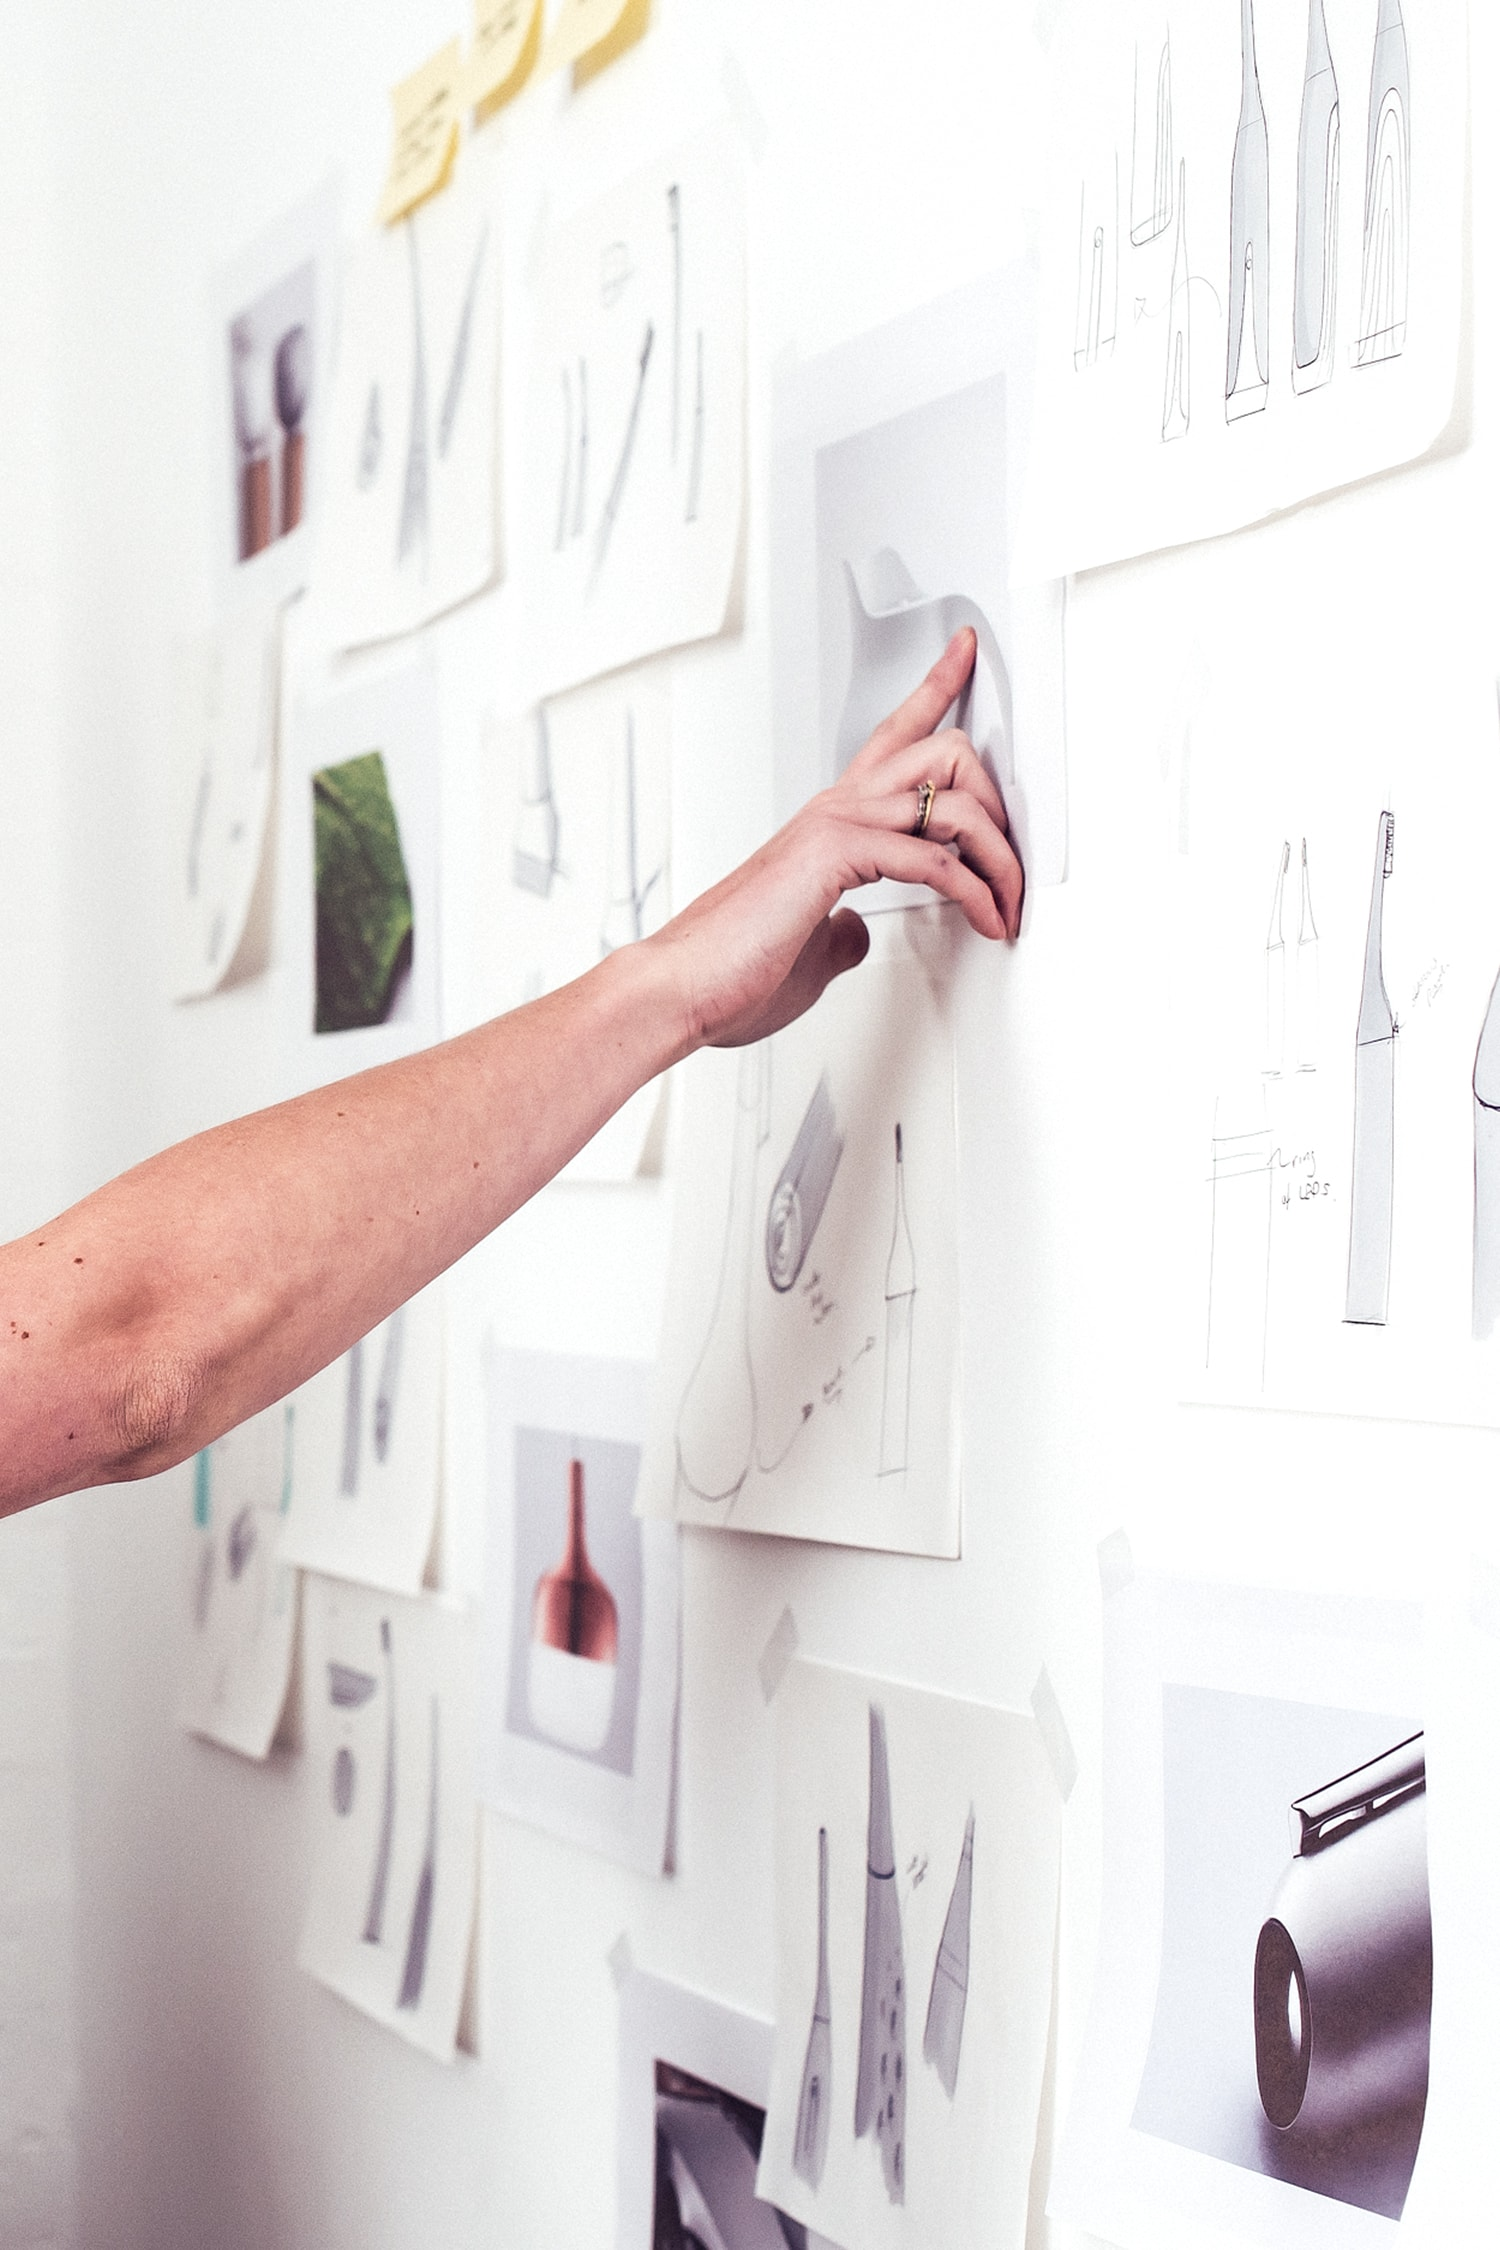 The image shows a hand pointing at some sketches and images pinned on the wall.